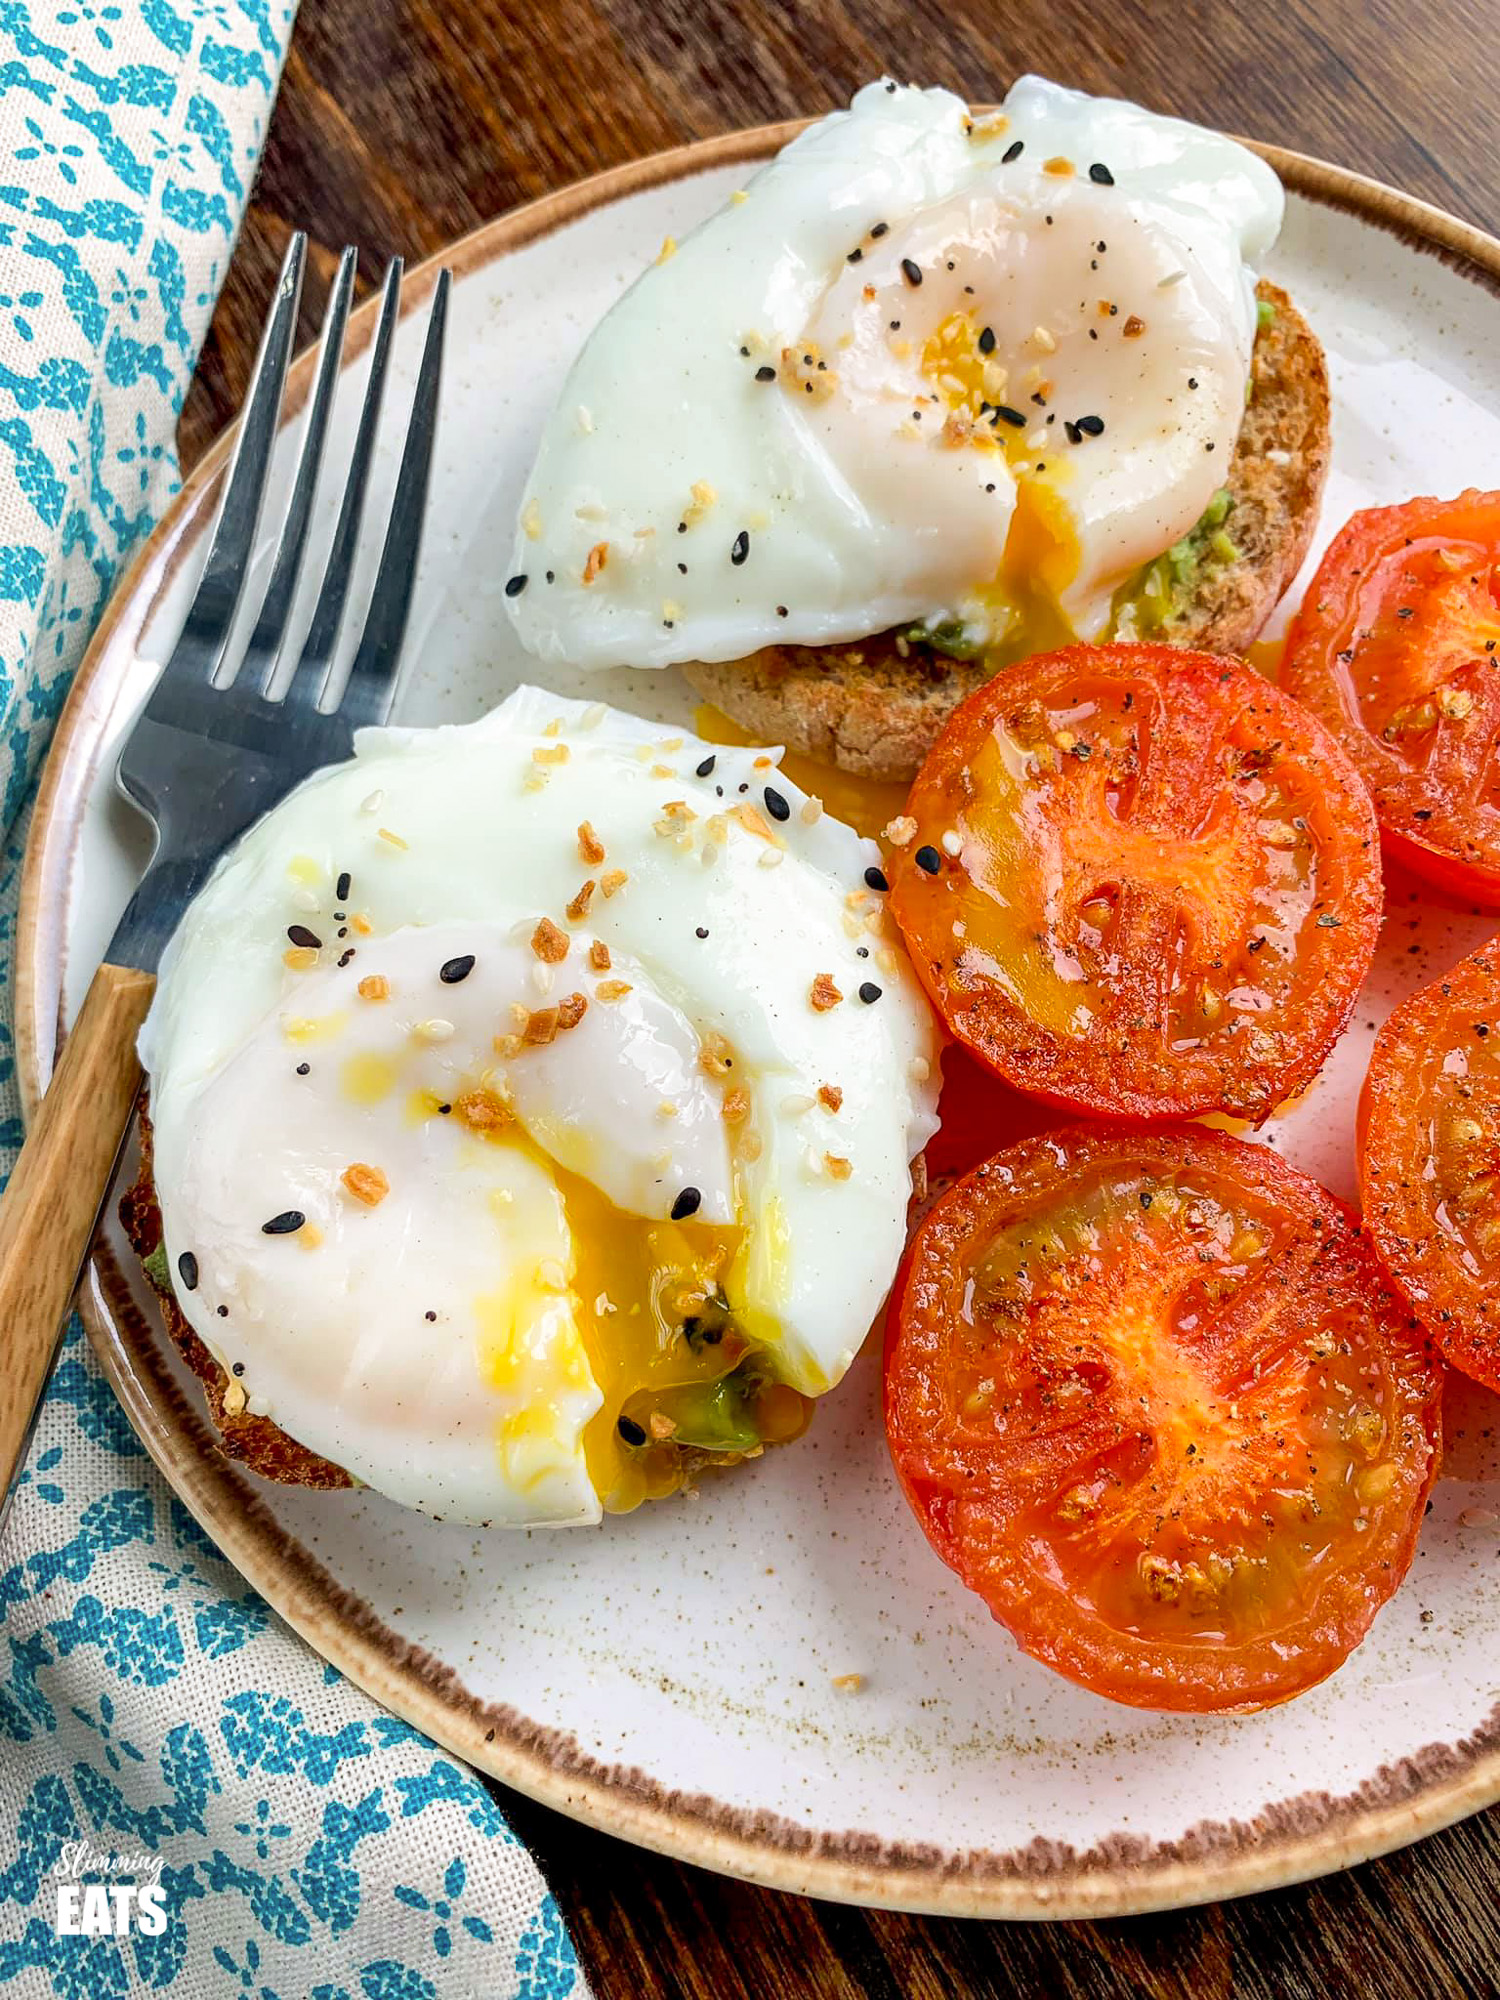 poached eggs over toasted wholewheat muffins with mashed avocado and grilled tomatoes on brown rimmed cream plate